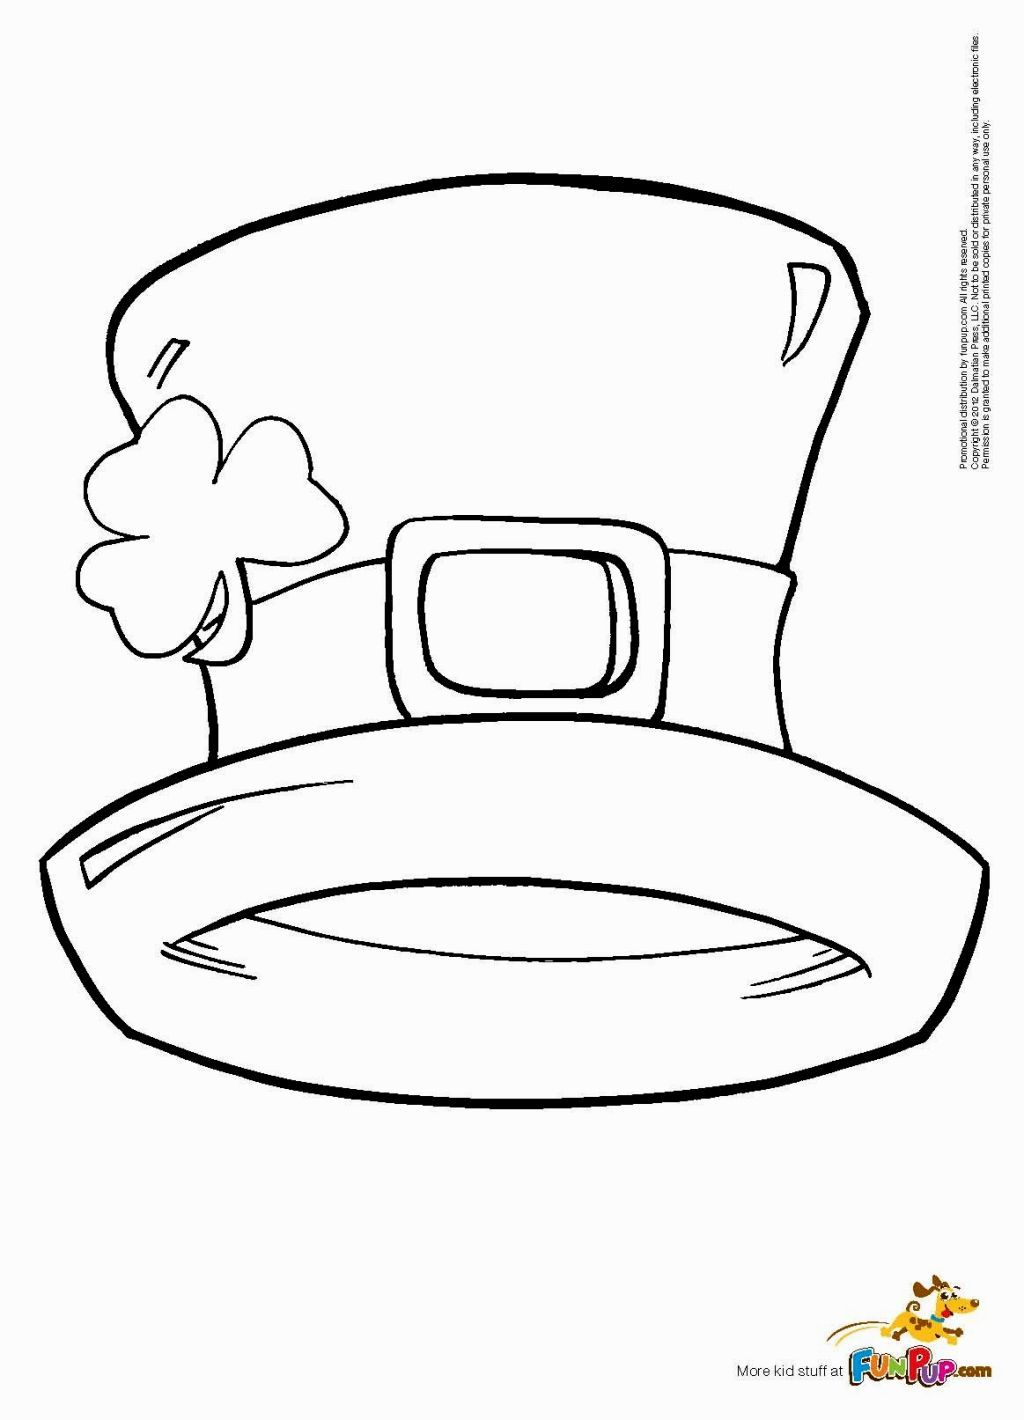 Coloring Pages For March